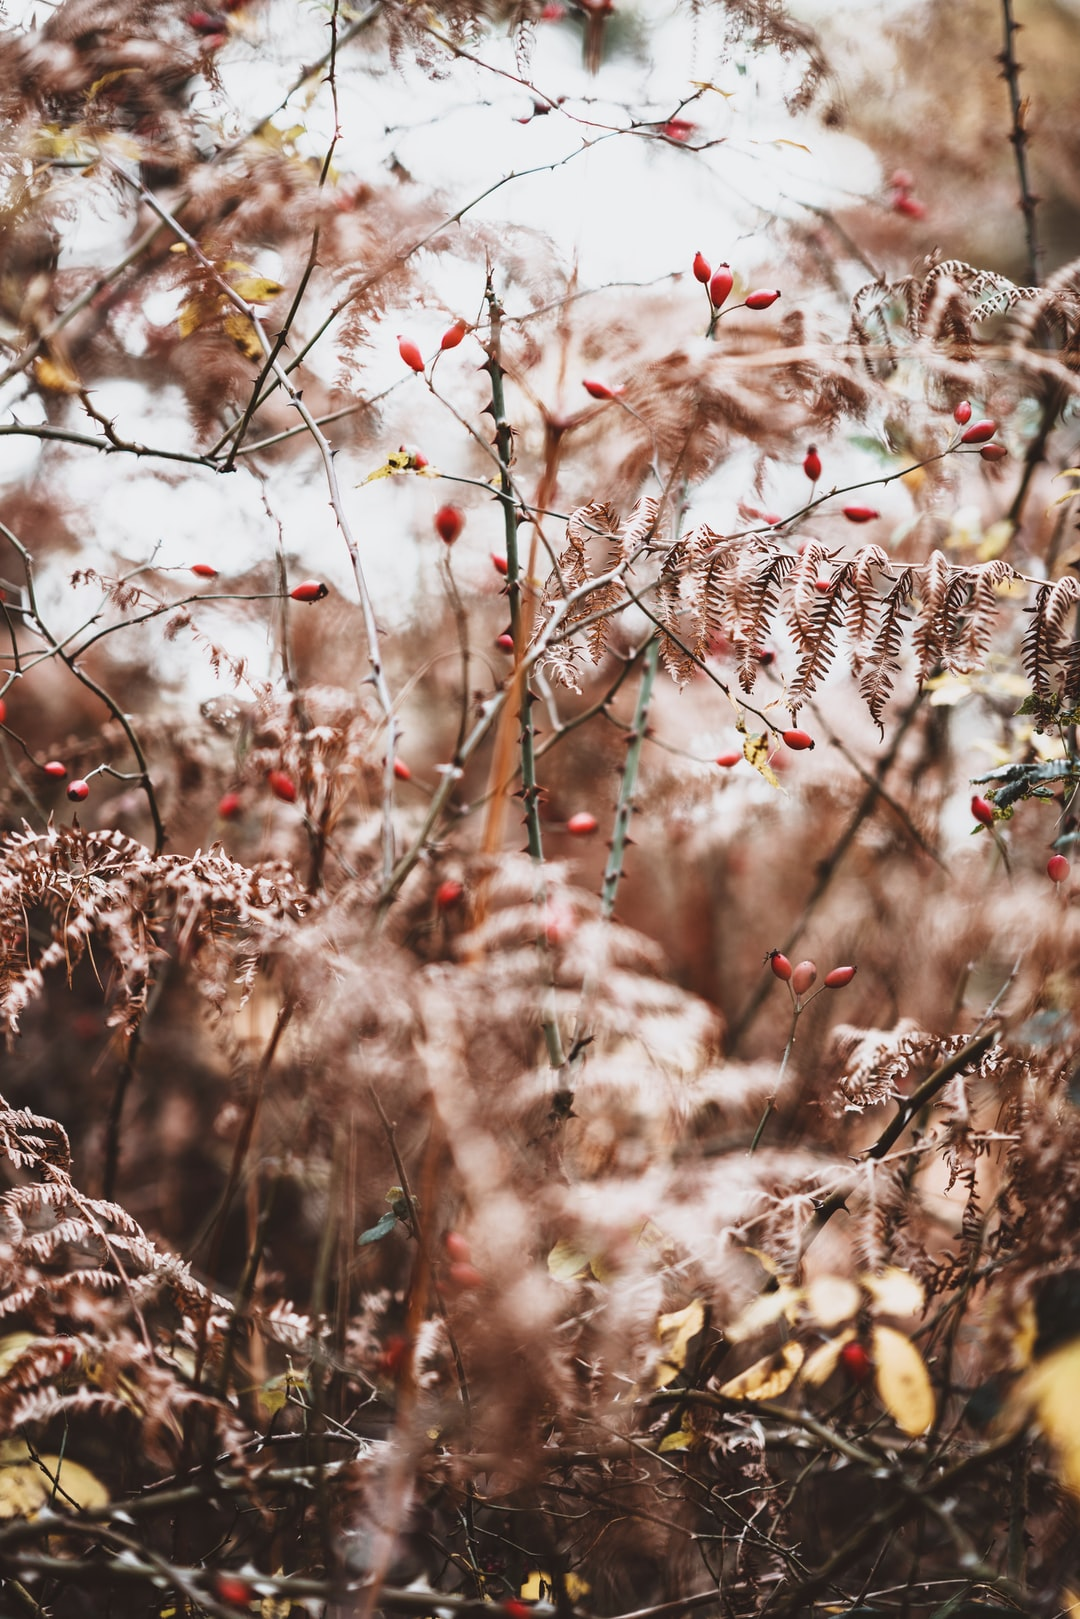 Rosehips,brambles and ferns in Autumn